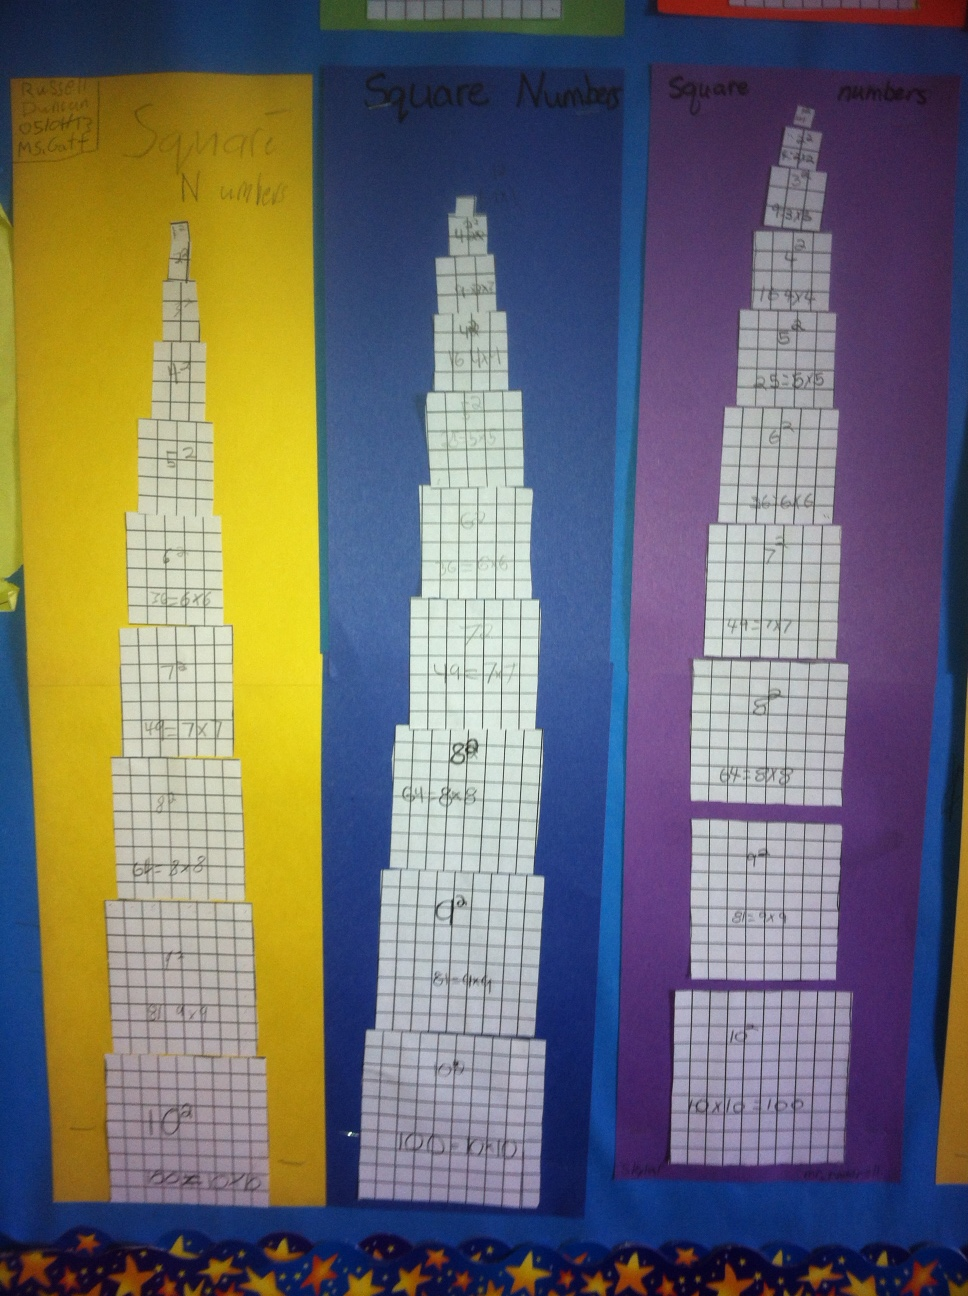 Math Bulletin Board Square Number Towers Focus On Math